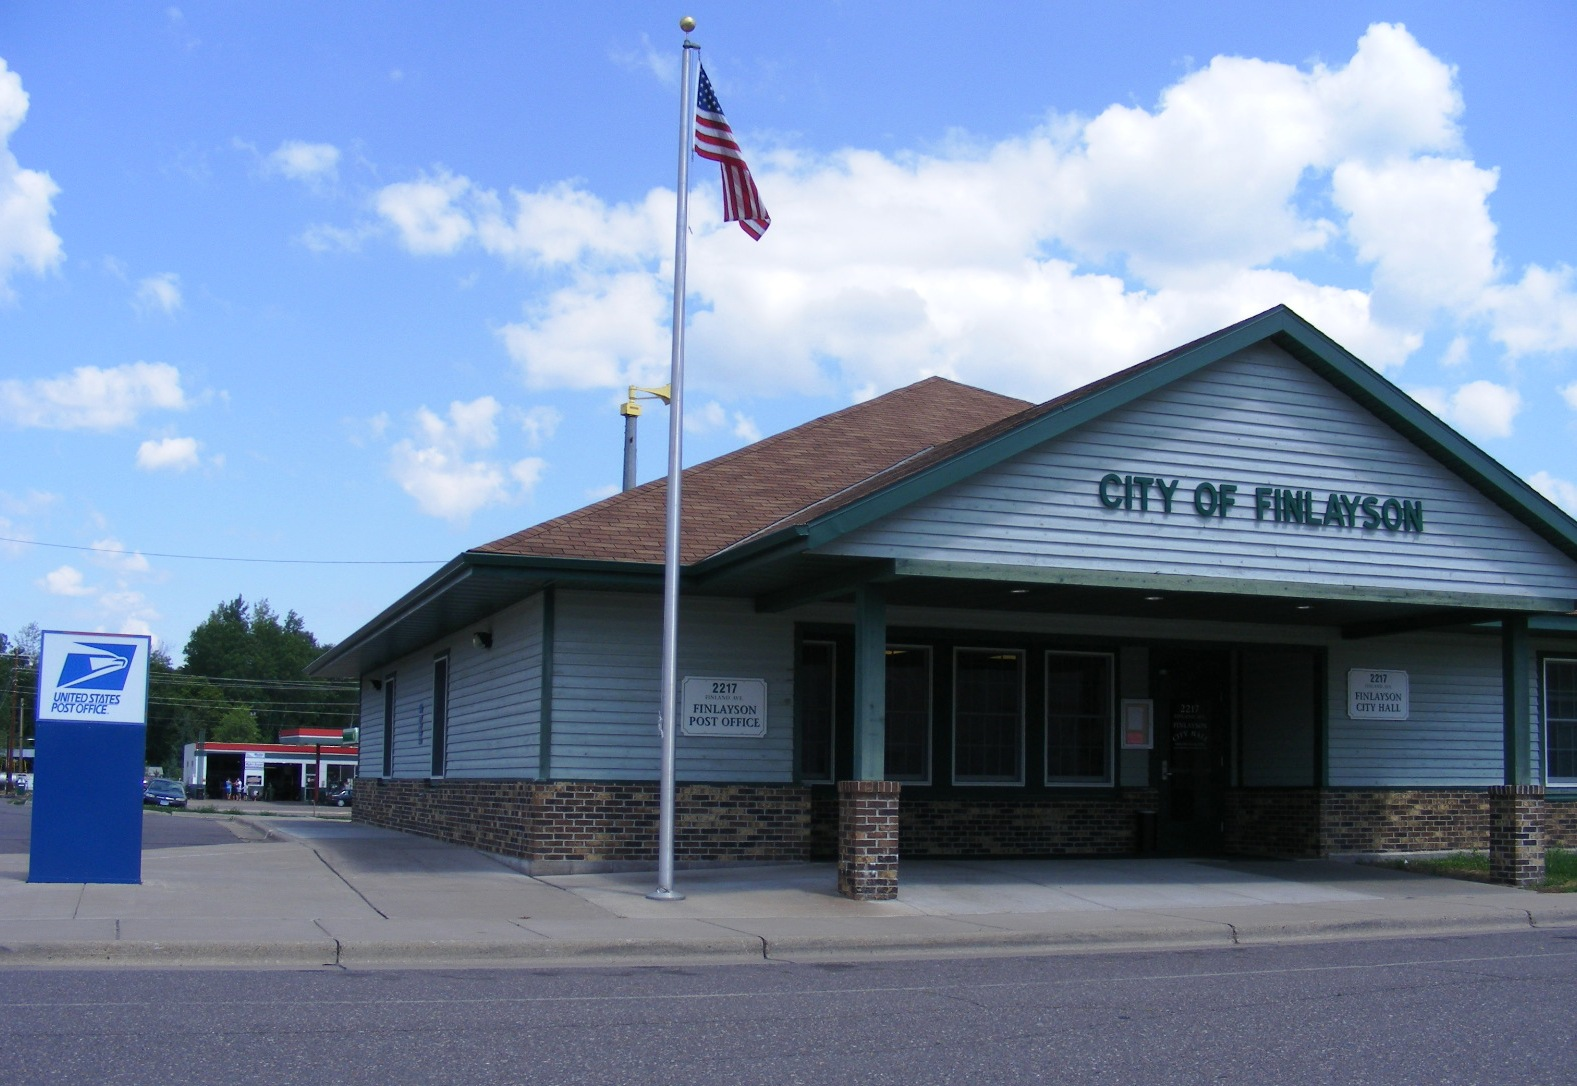 Finlayson (MN) United States  city photos gallery : ... Minnesota, United States. The population was 976 at the 2000 census